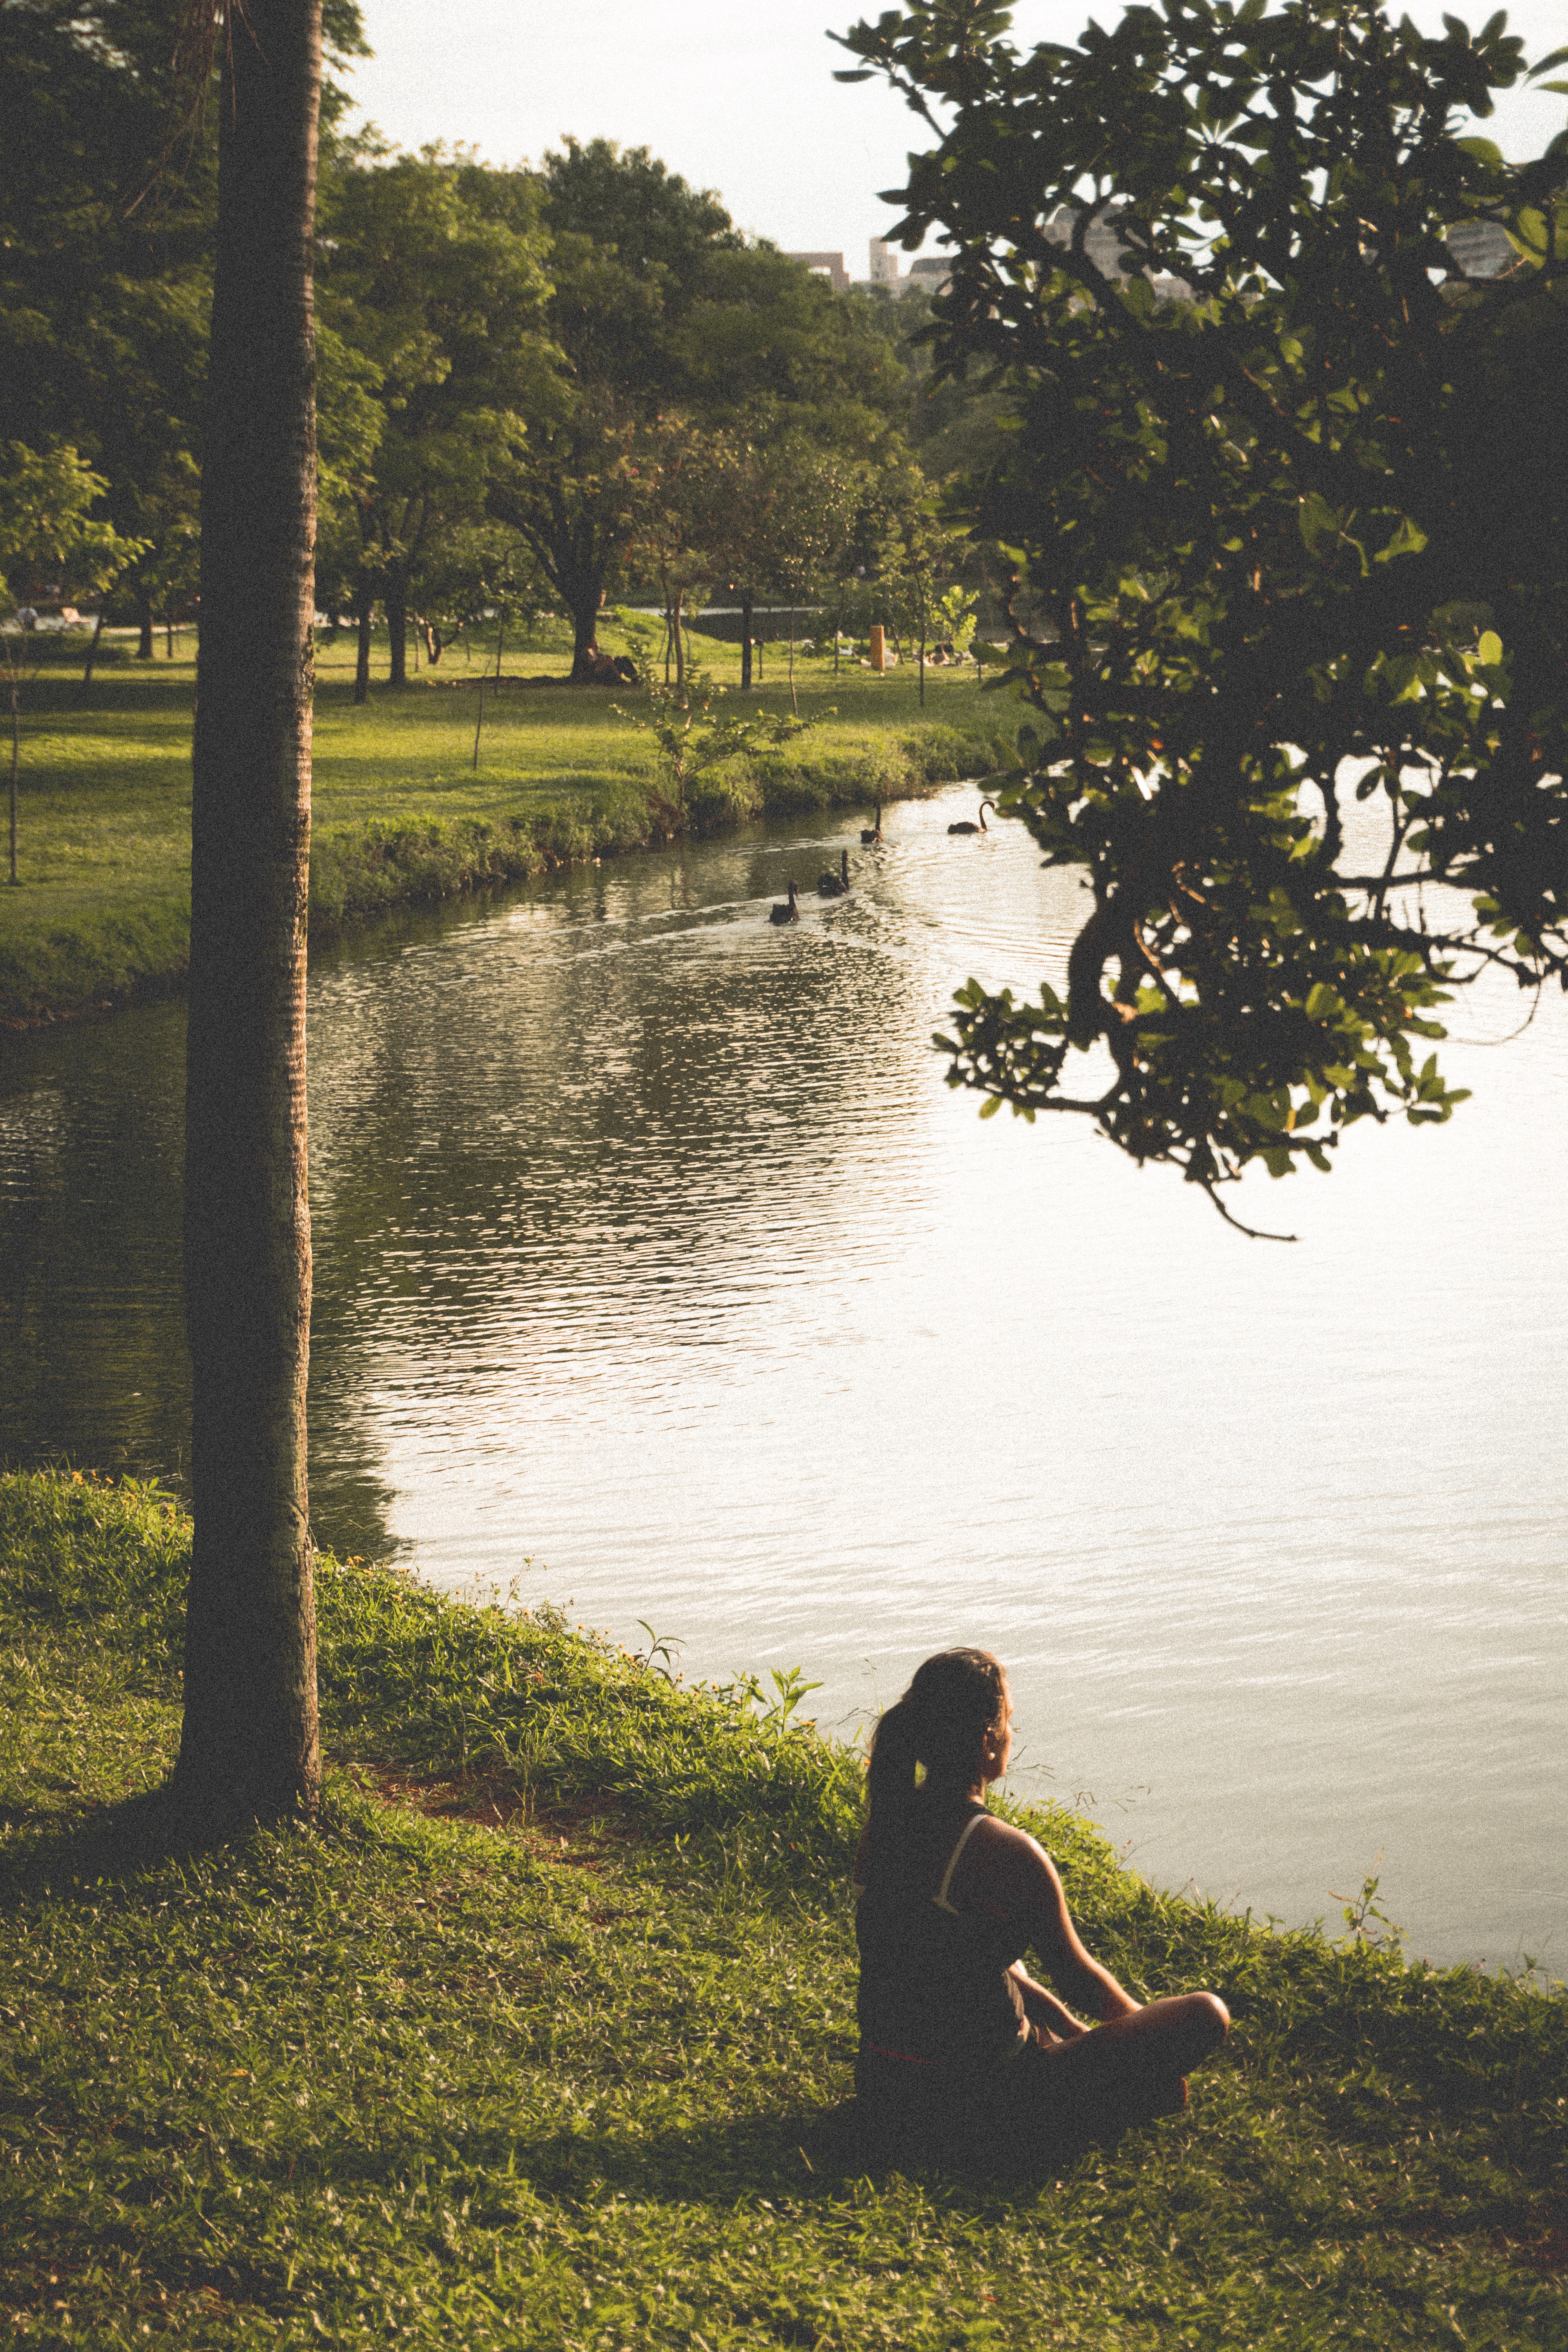 Woman Sitting on Grass by Lake, Adult, Recreation, Water, Trees, HQ Photo